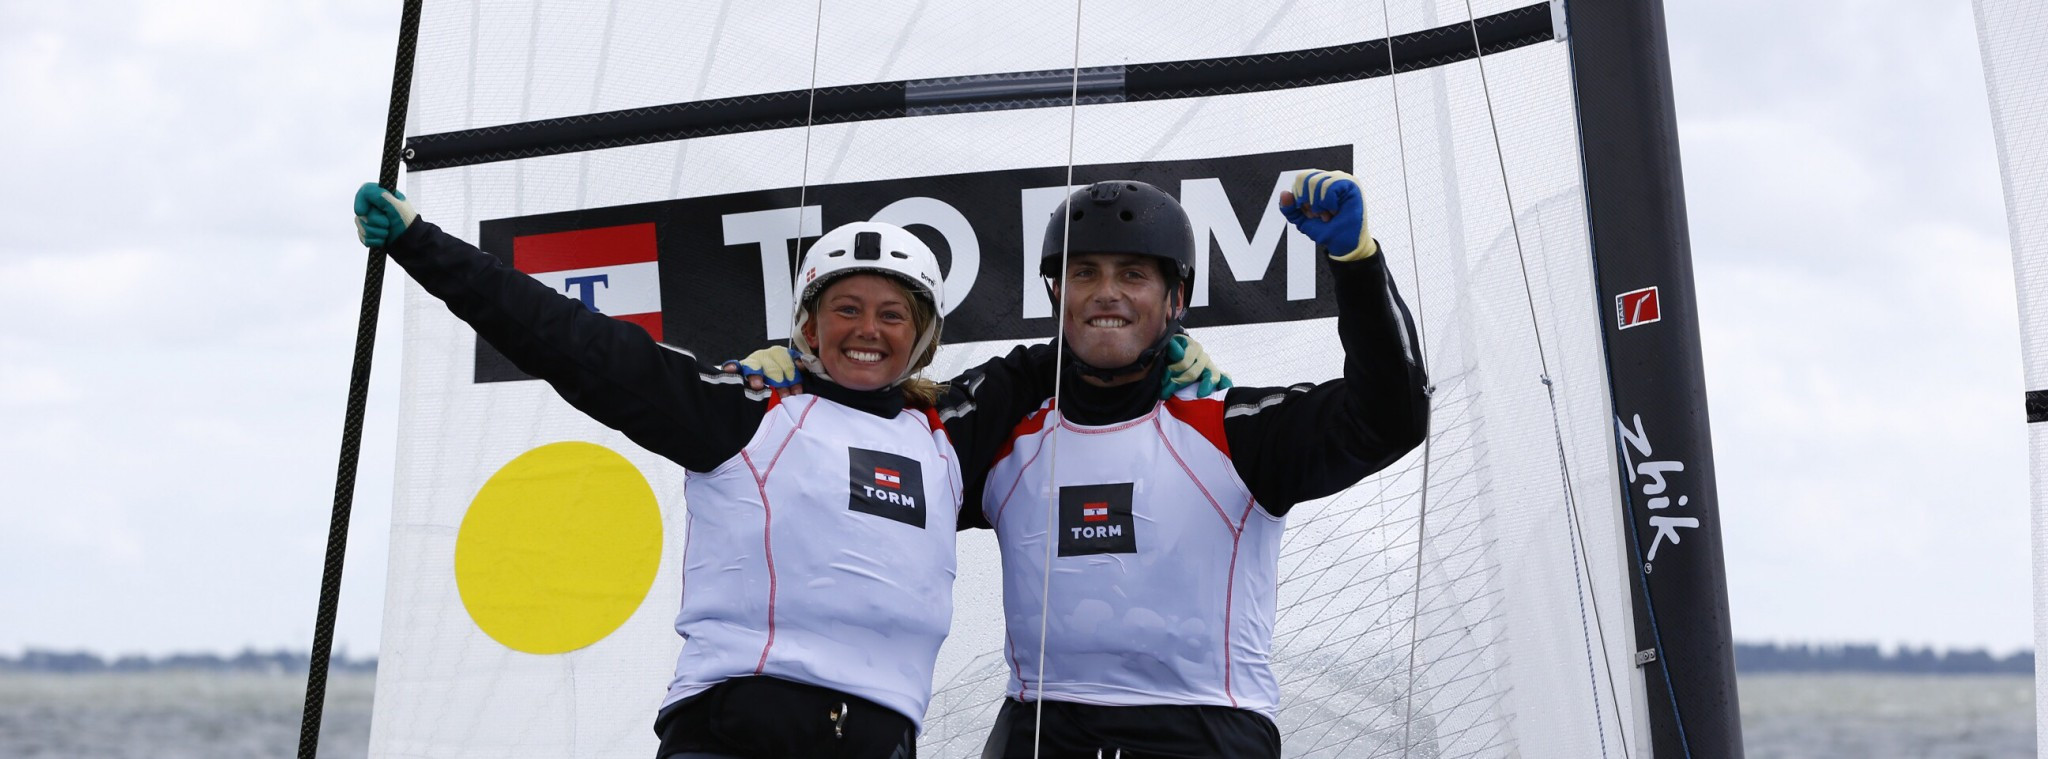 Cenholt and Lubeck among Danish leaders at home World Sailing Championships test event